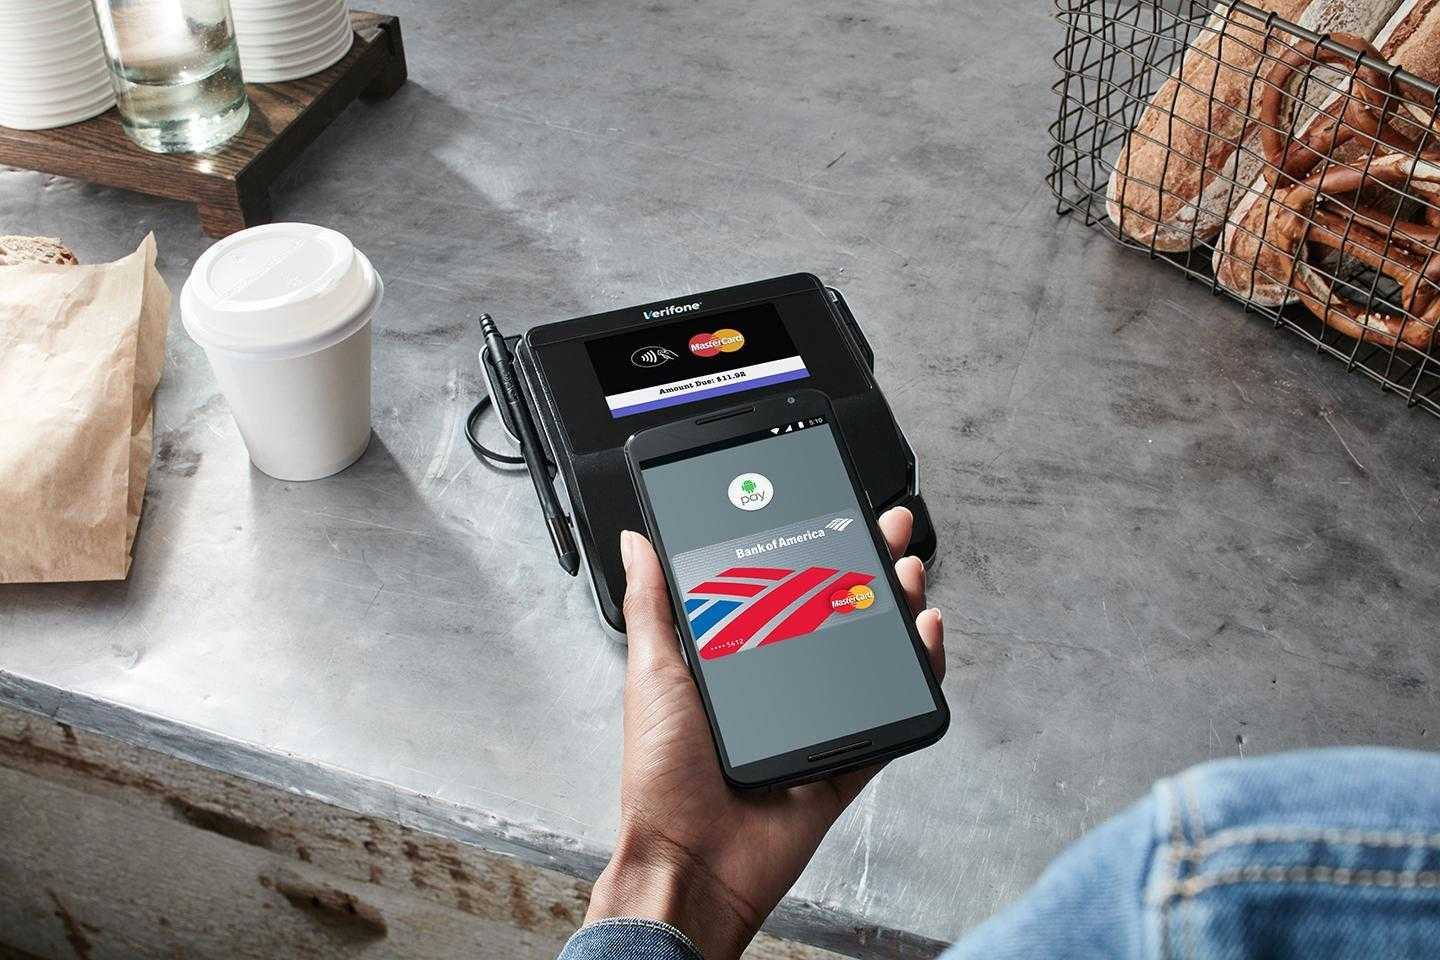 Google запустила Android Pay в России. Наконец-то